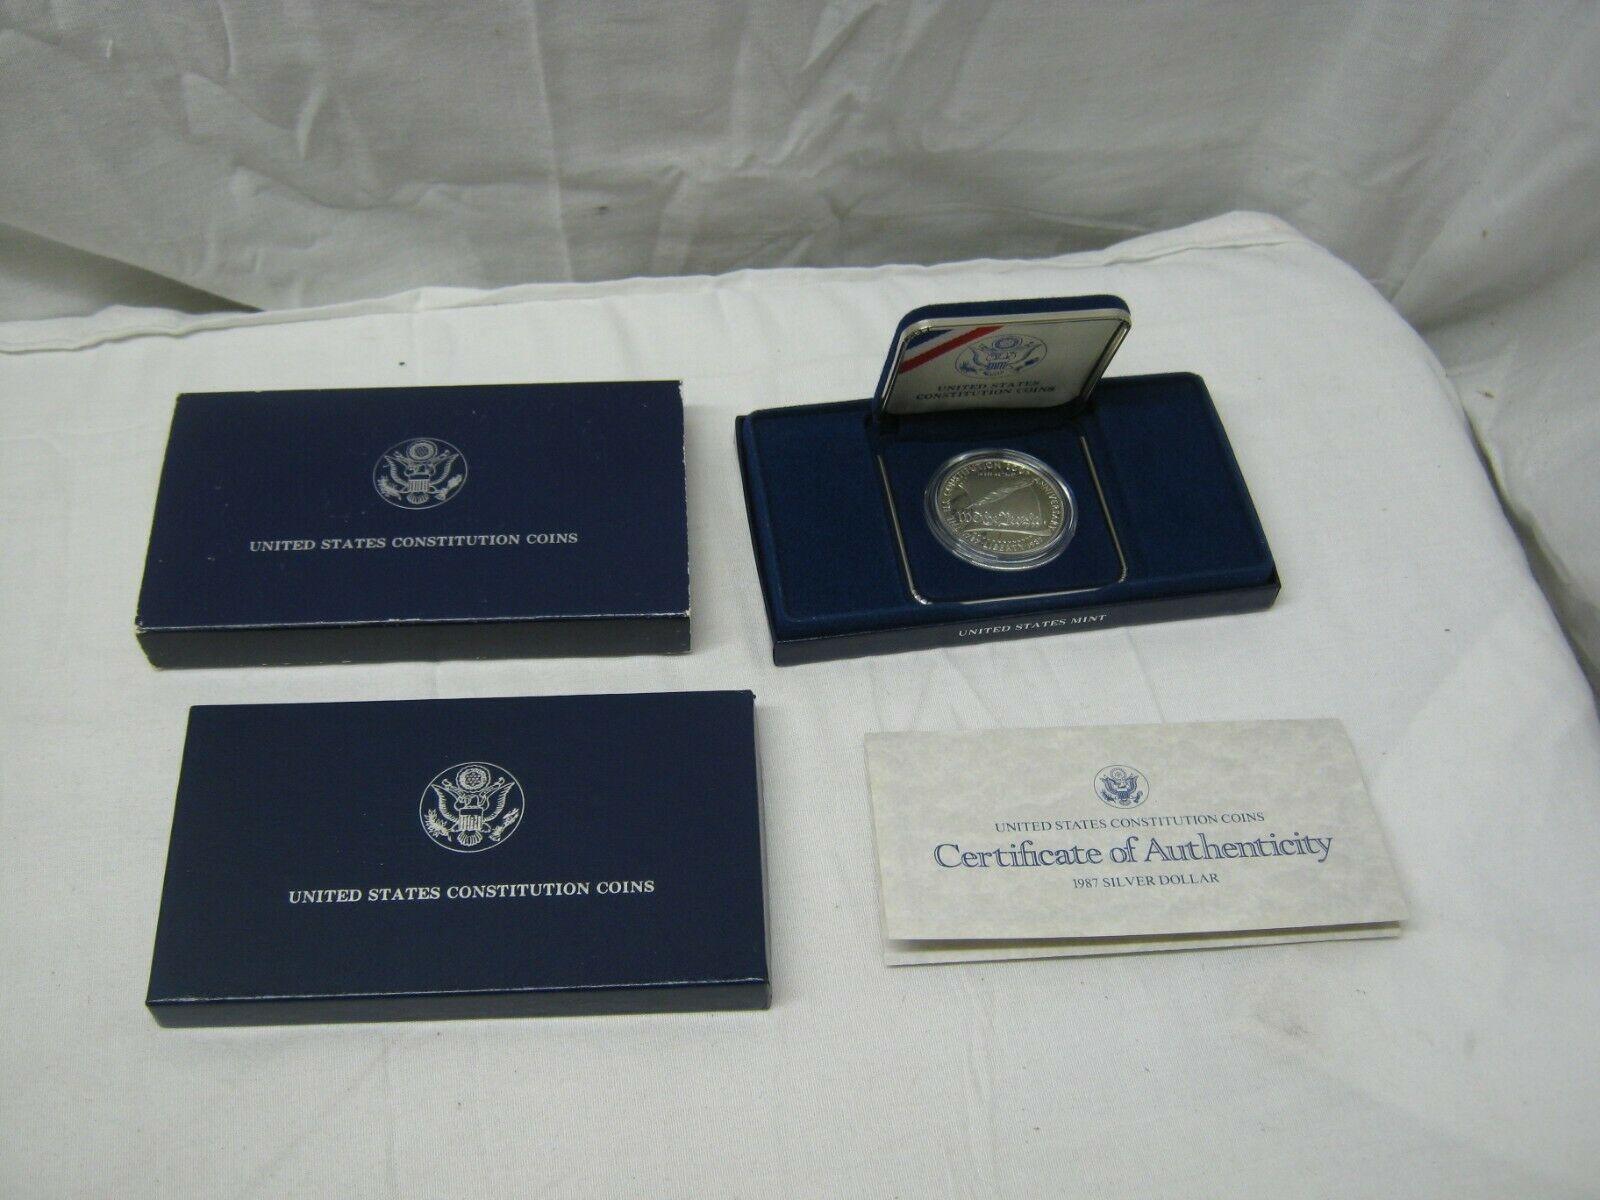 1987 US Constitution 200th Anniversary Silver Proof Dollar - $24.95